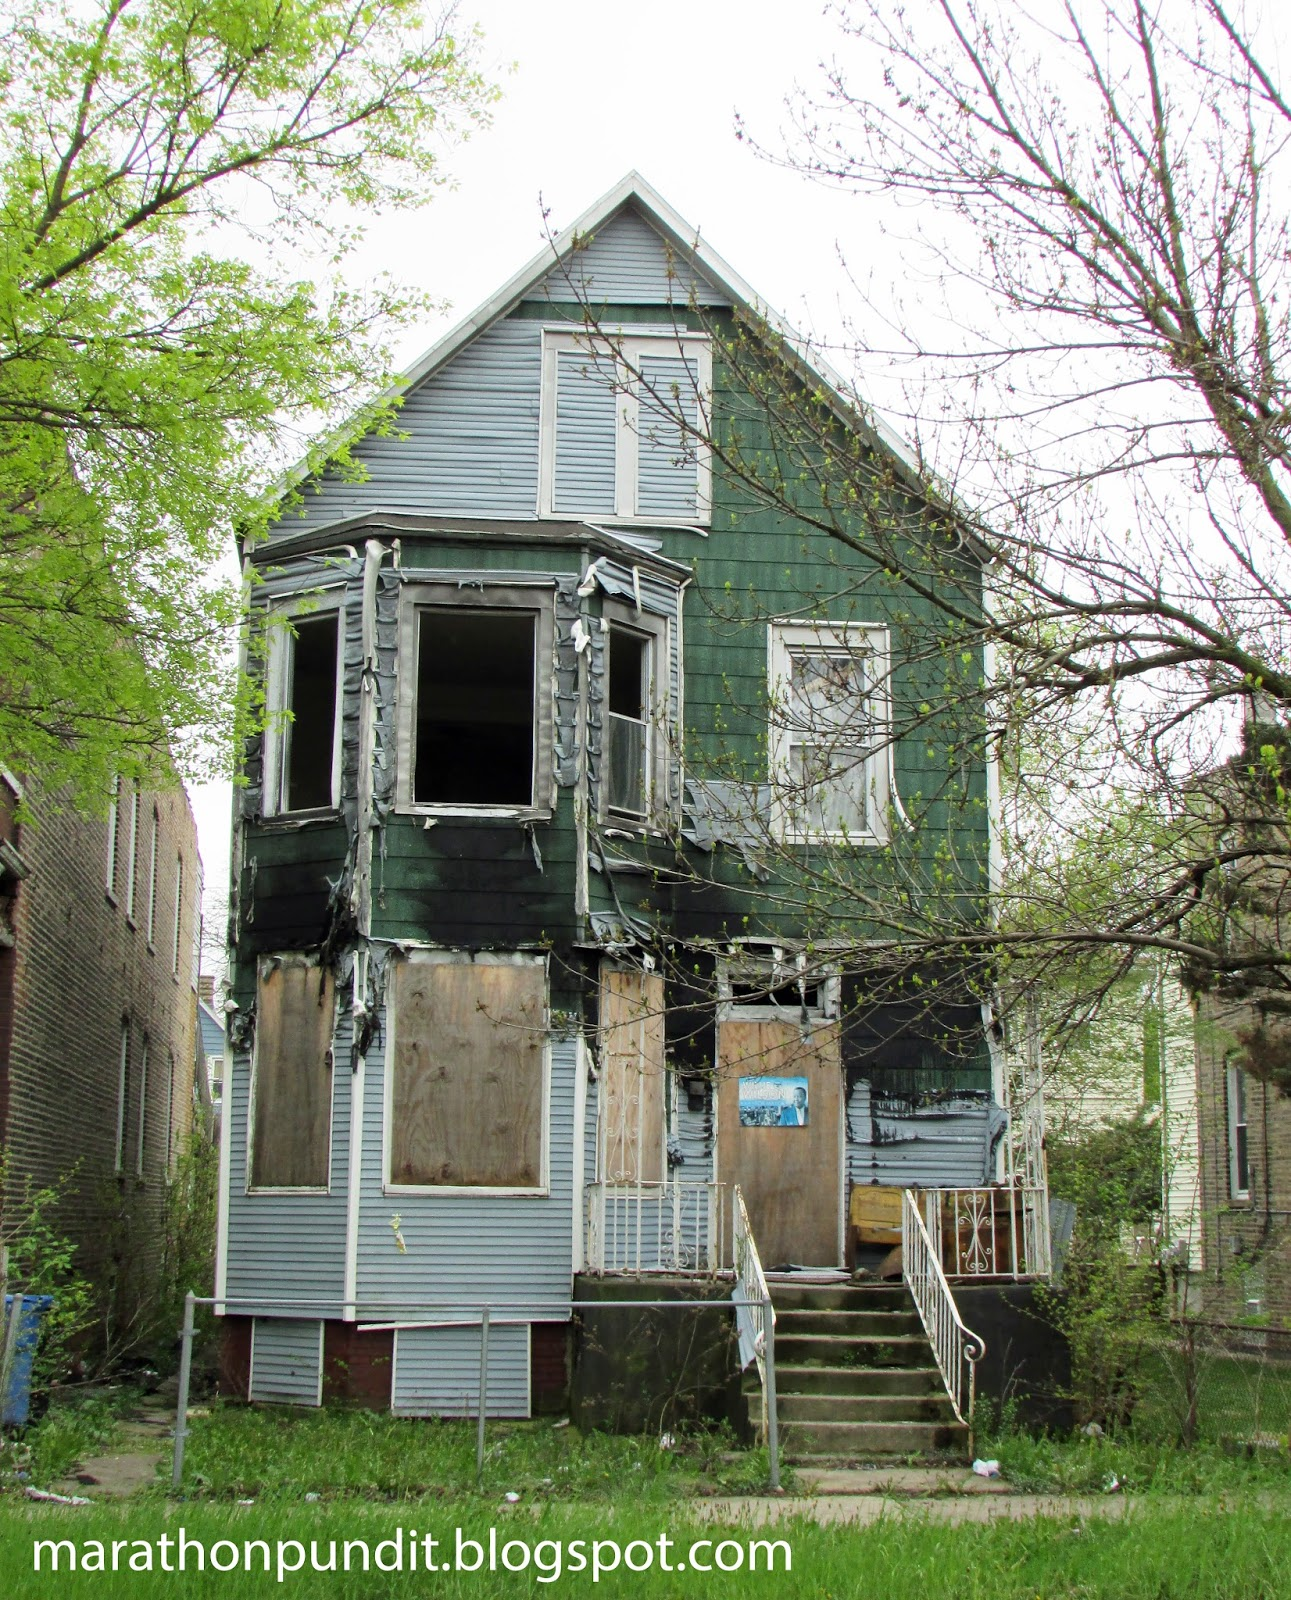 Marathon Pundit: (Photos) The Abandoned Homes Of Chicago's